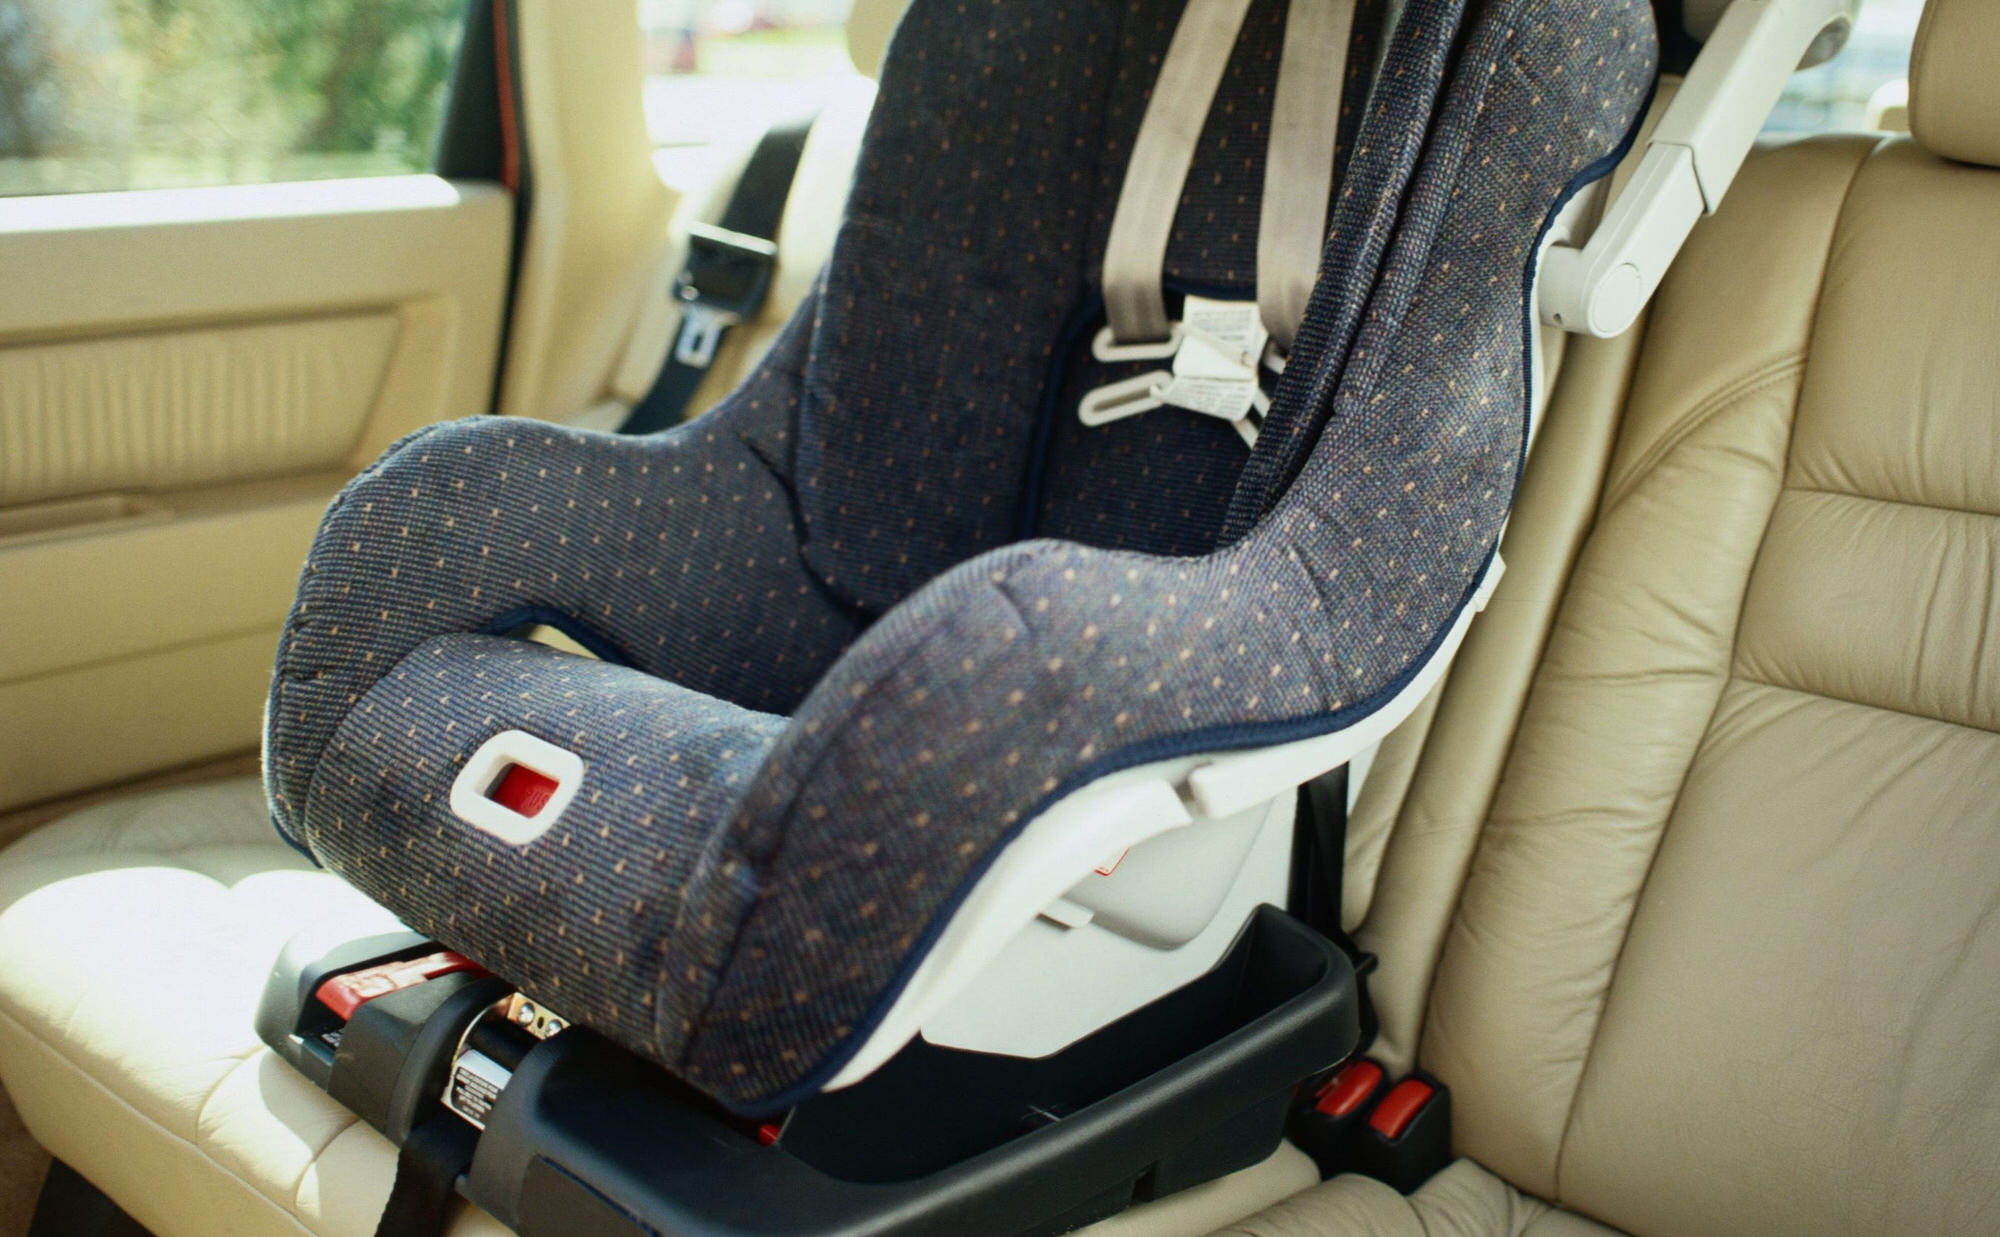 How to Correctly Install Your Car Seat